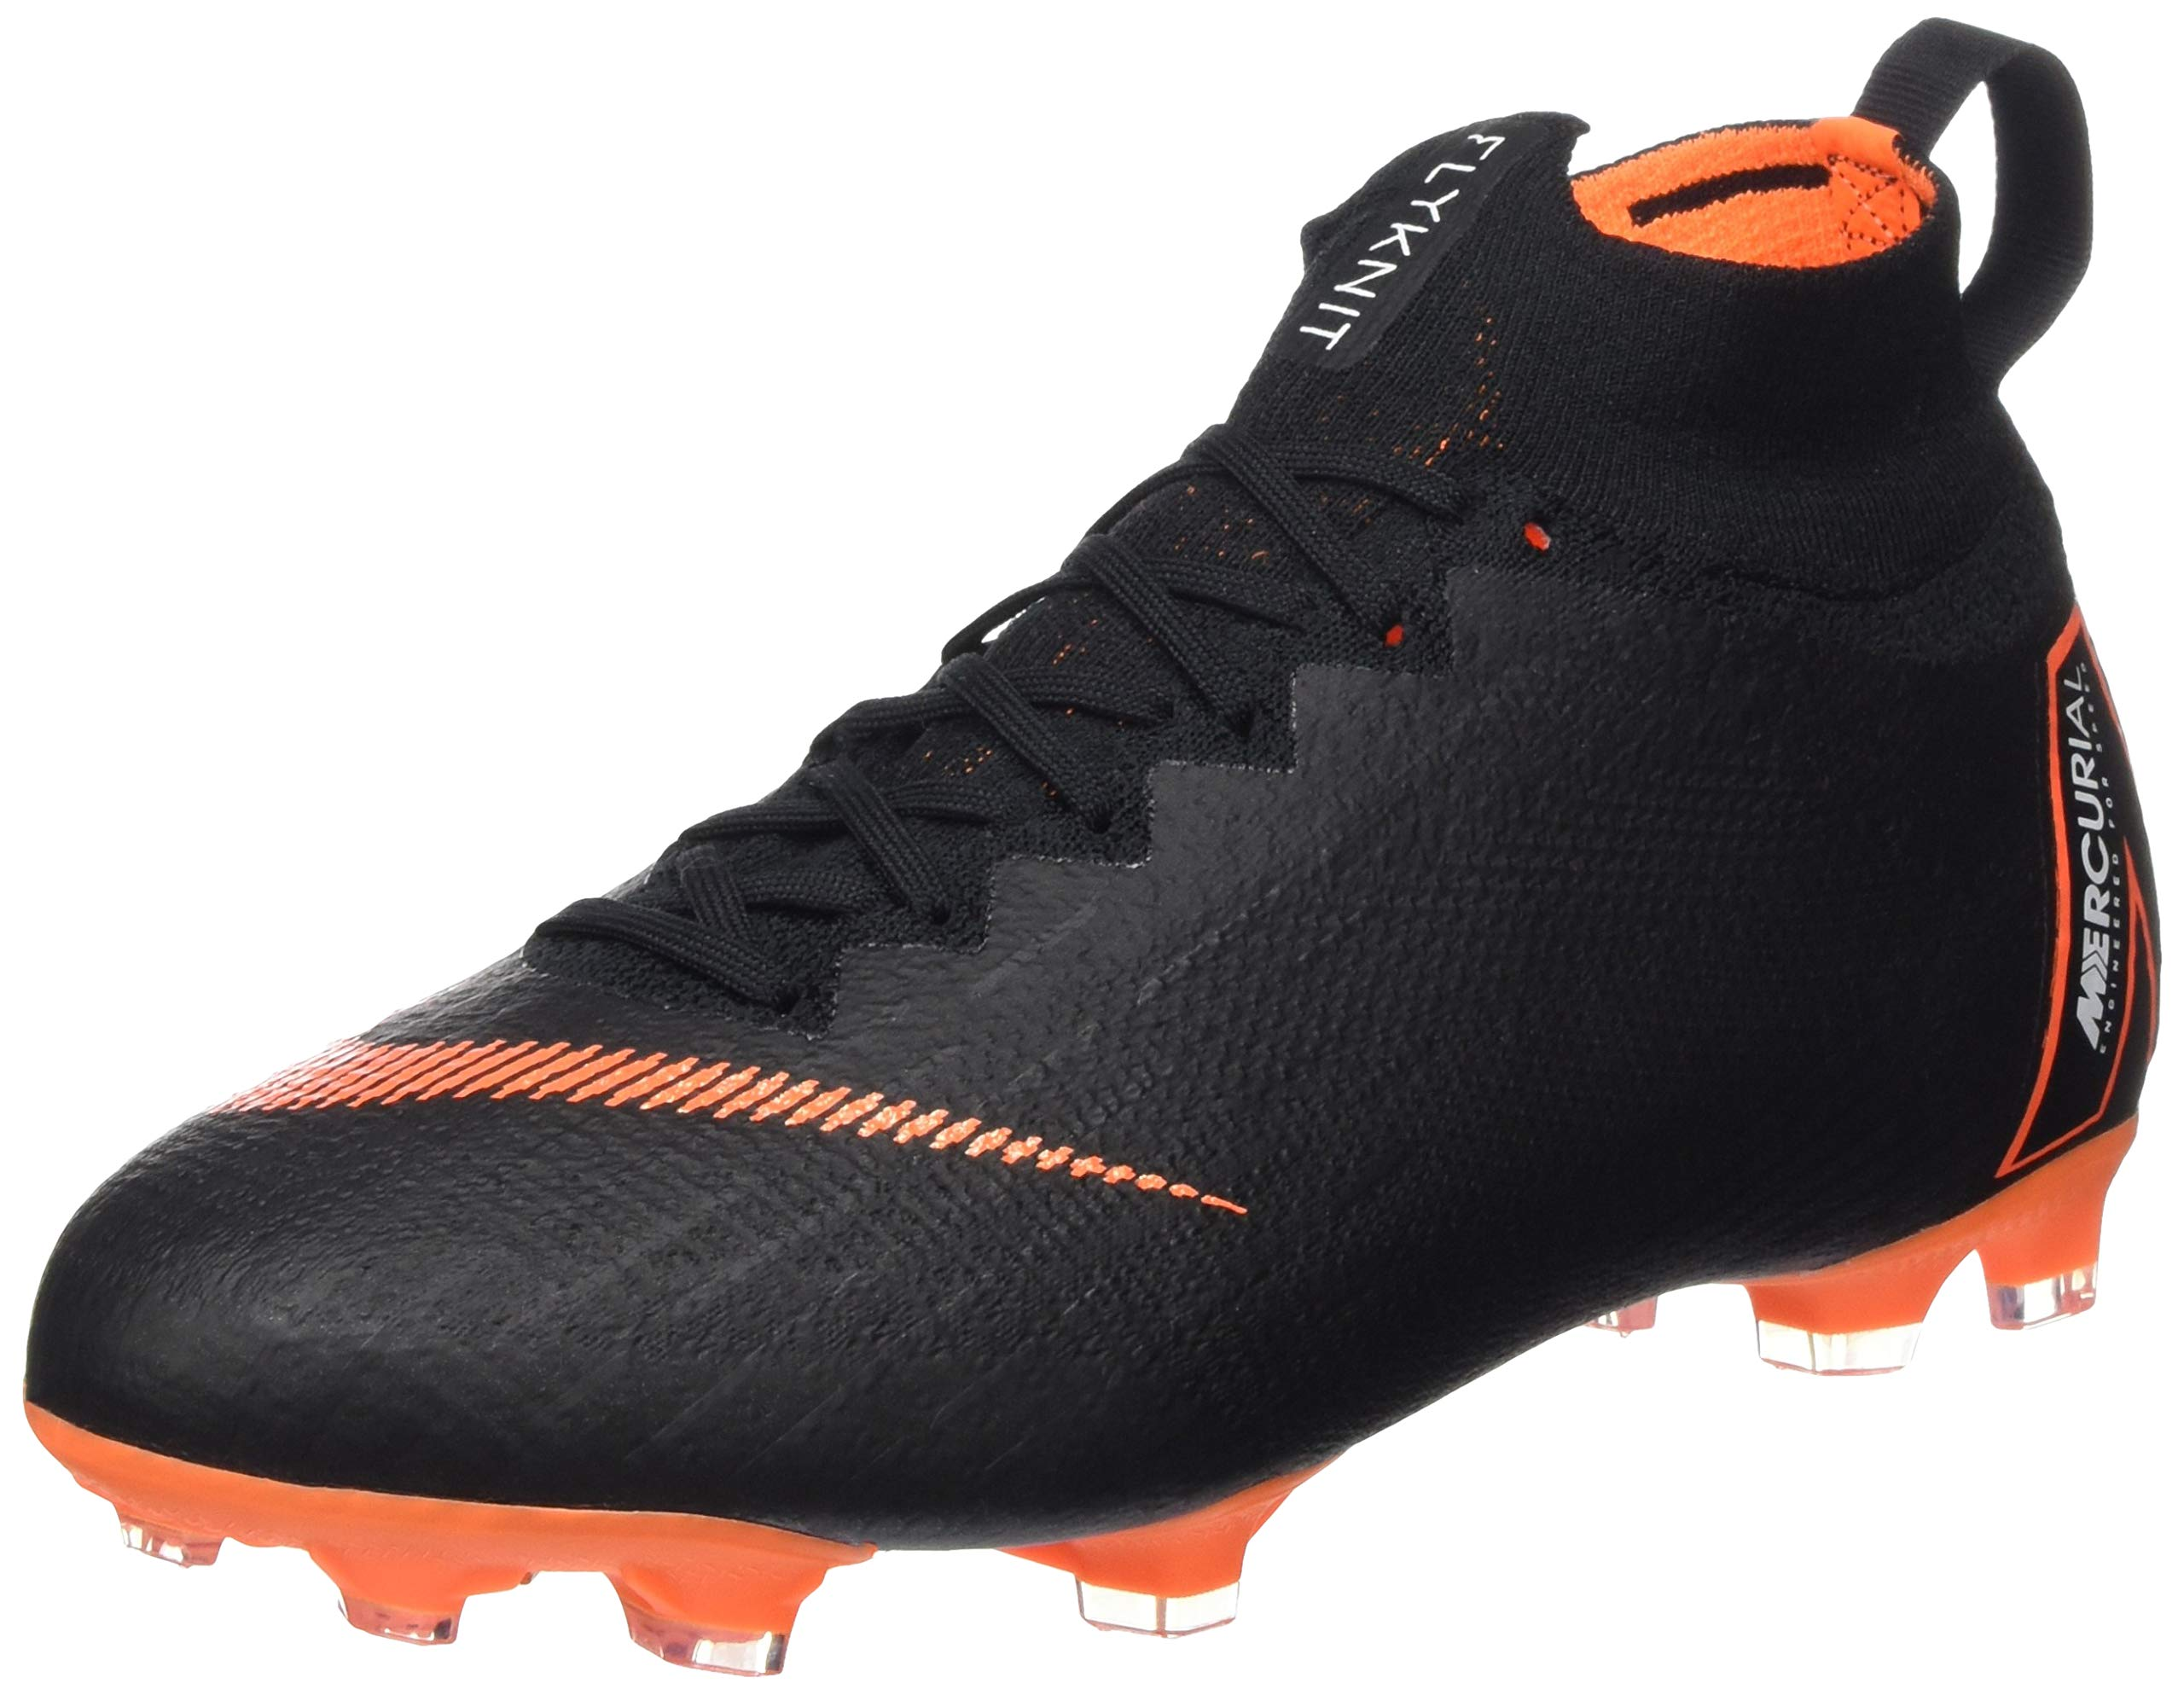 Nike Jr. Mercurial Superfly 360 Elite Big Kids' Firm-Ground Soccer Cleat (6Y, Black/Total Orange/White)